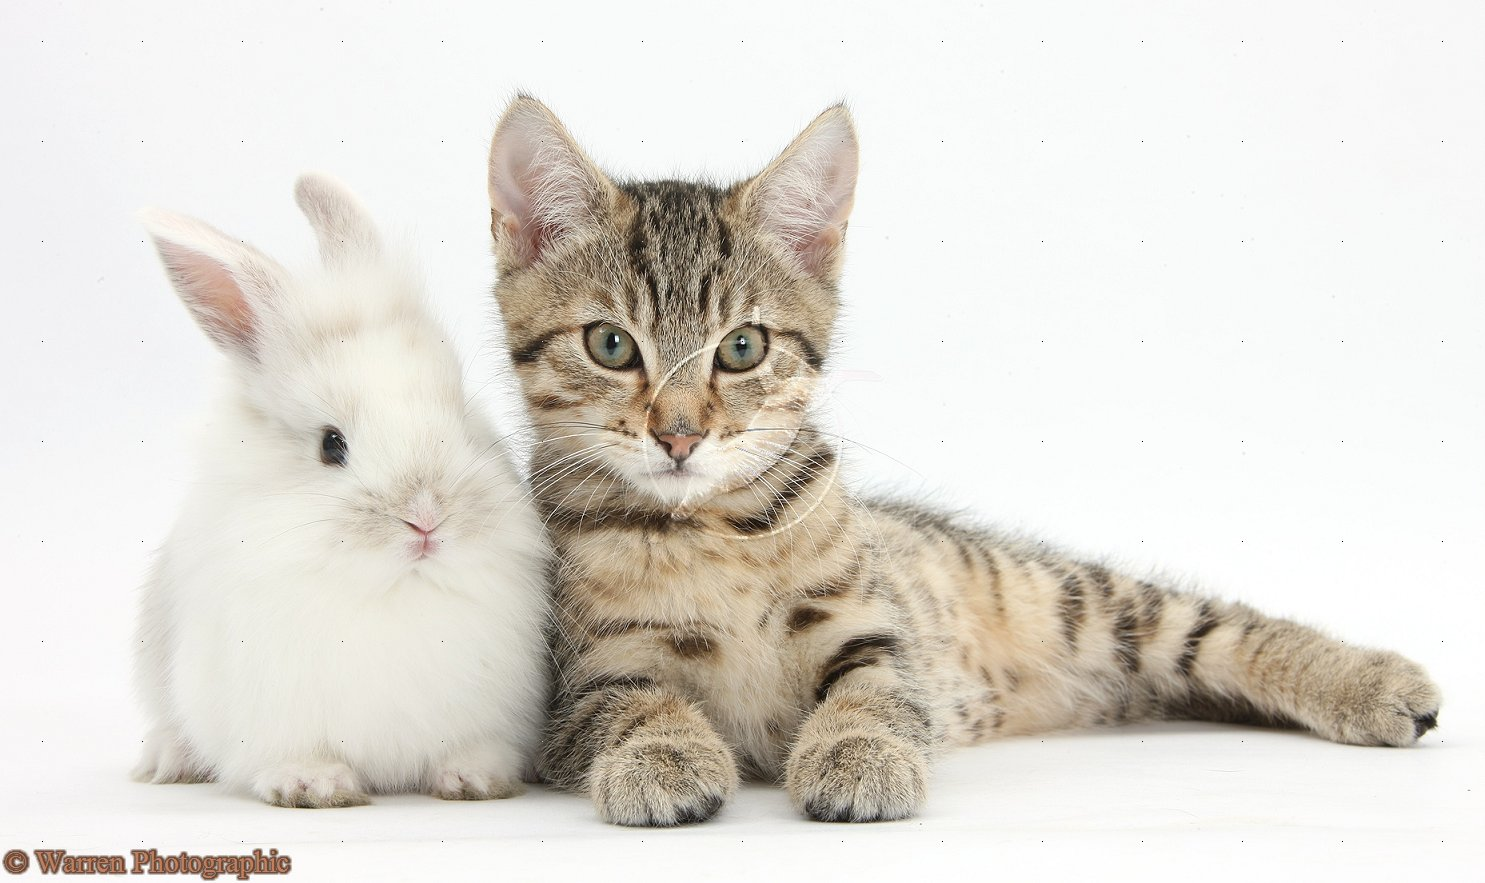 Cute Baby Kittens 9227 Hd Wallpapers in Animals   Imagescicom 1485x883